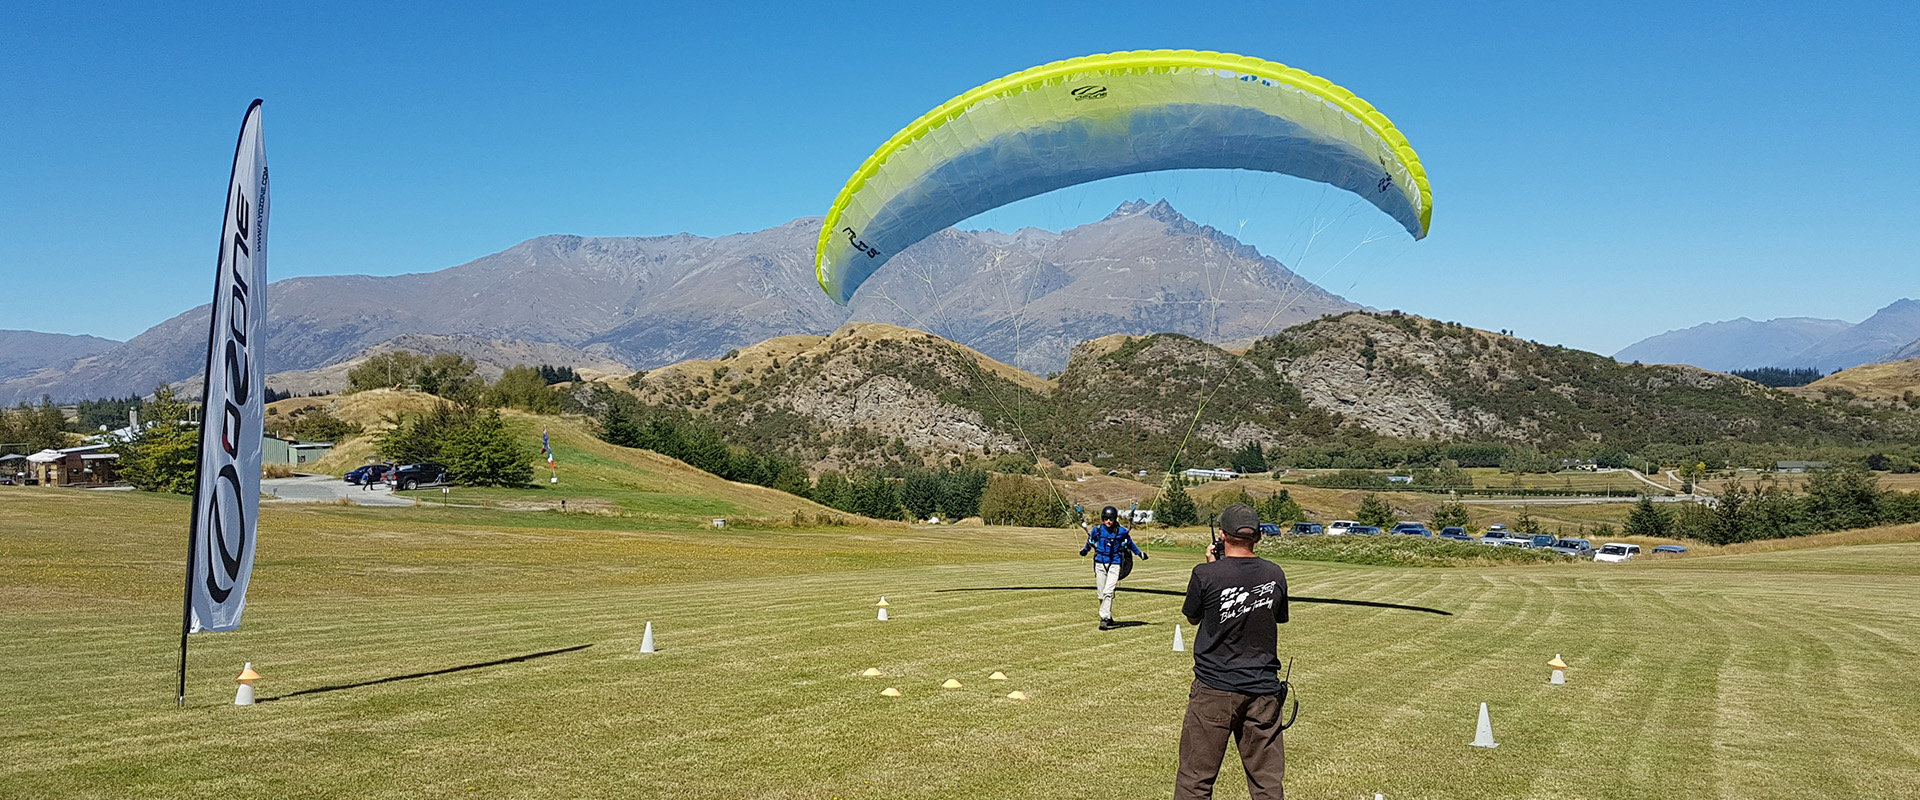 Useful Links - Infinity Paragliding, New Zealand